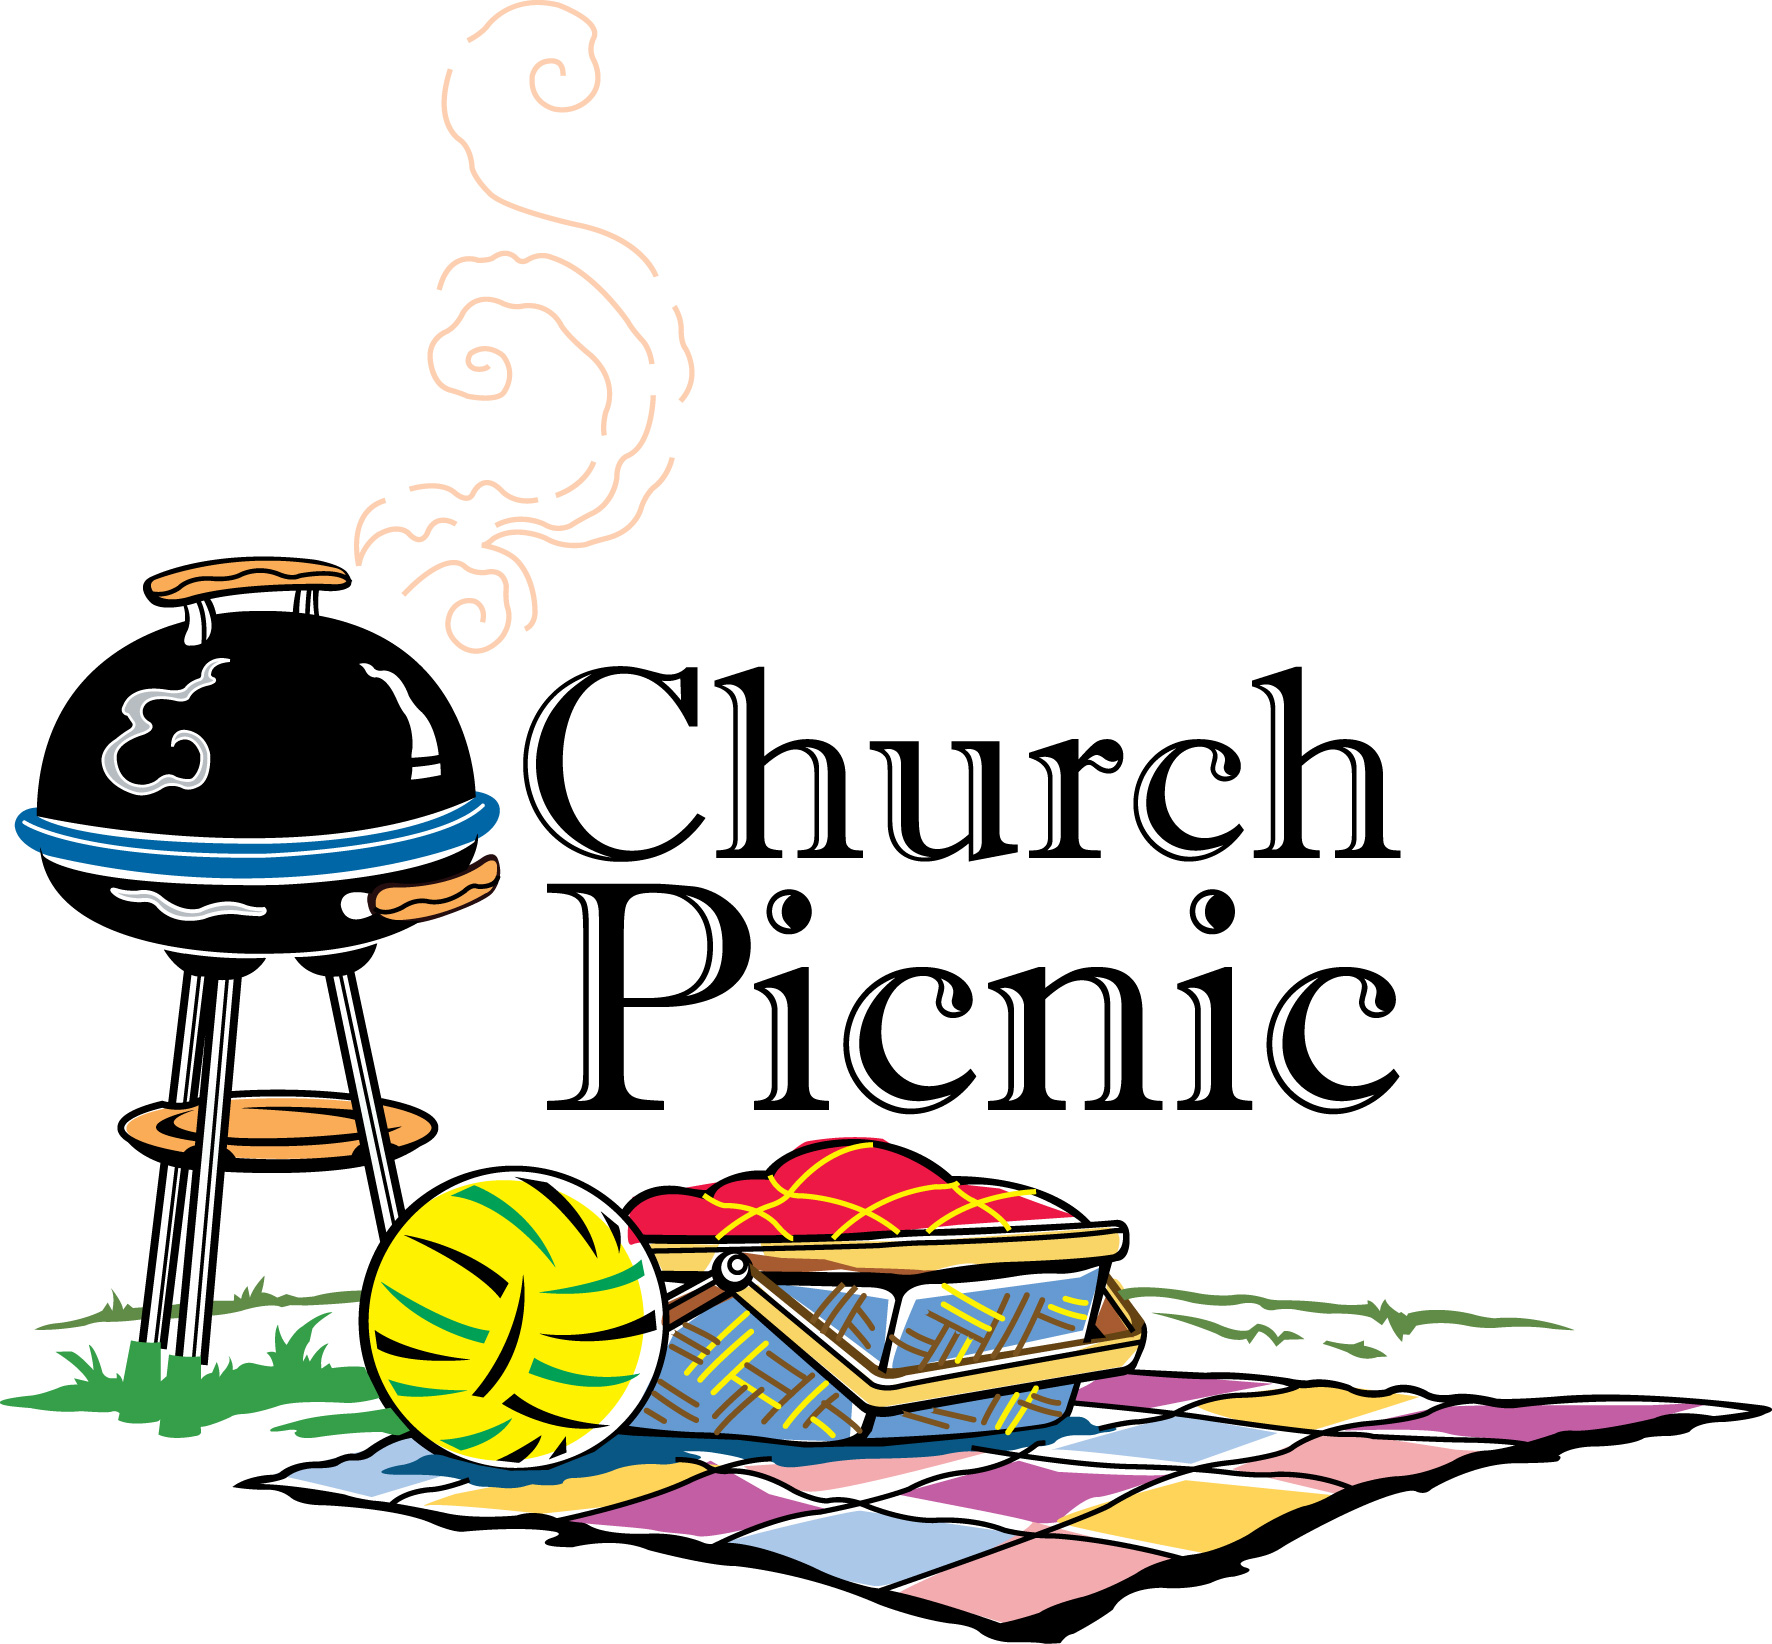 church-picnic-images-free-clipart-images.jpeg